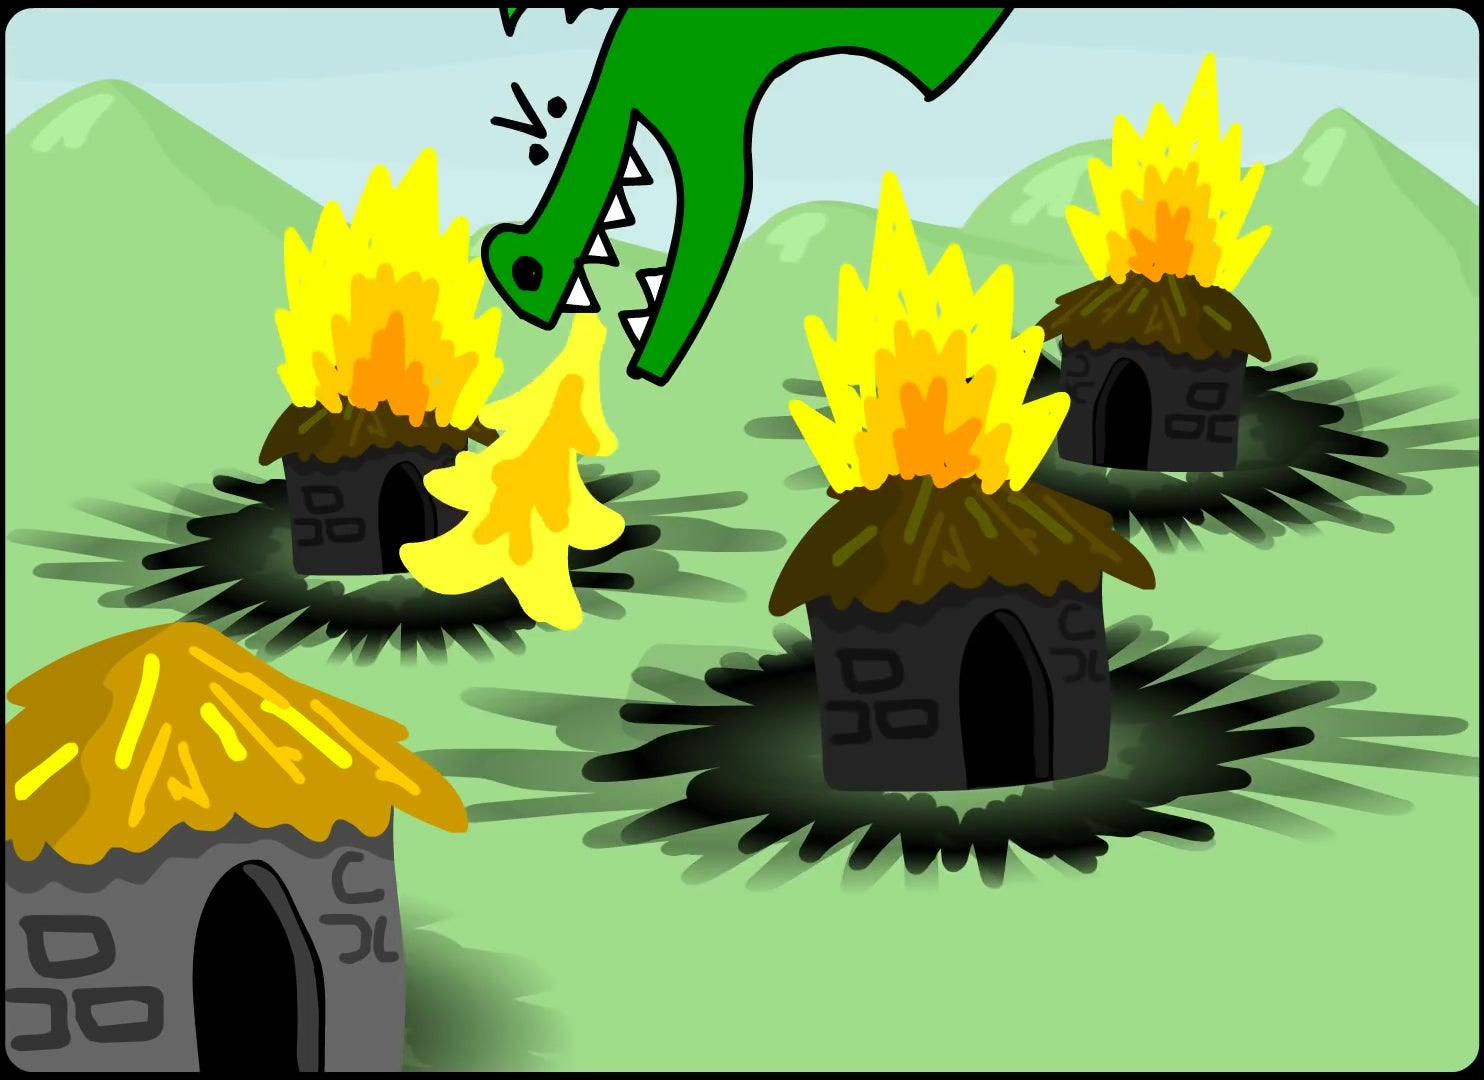 Trogdor burninating some cottages.